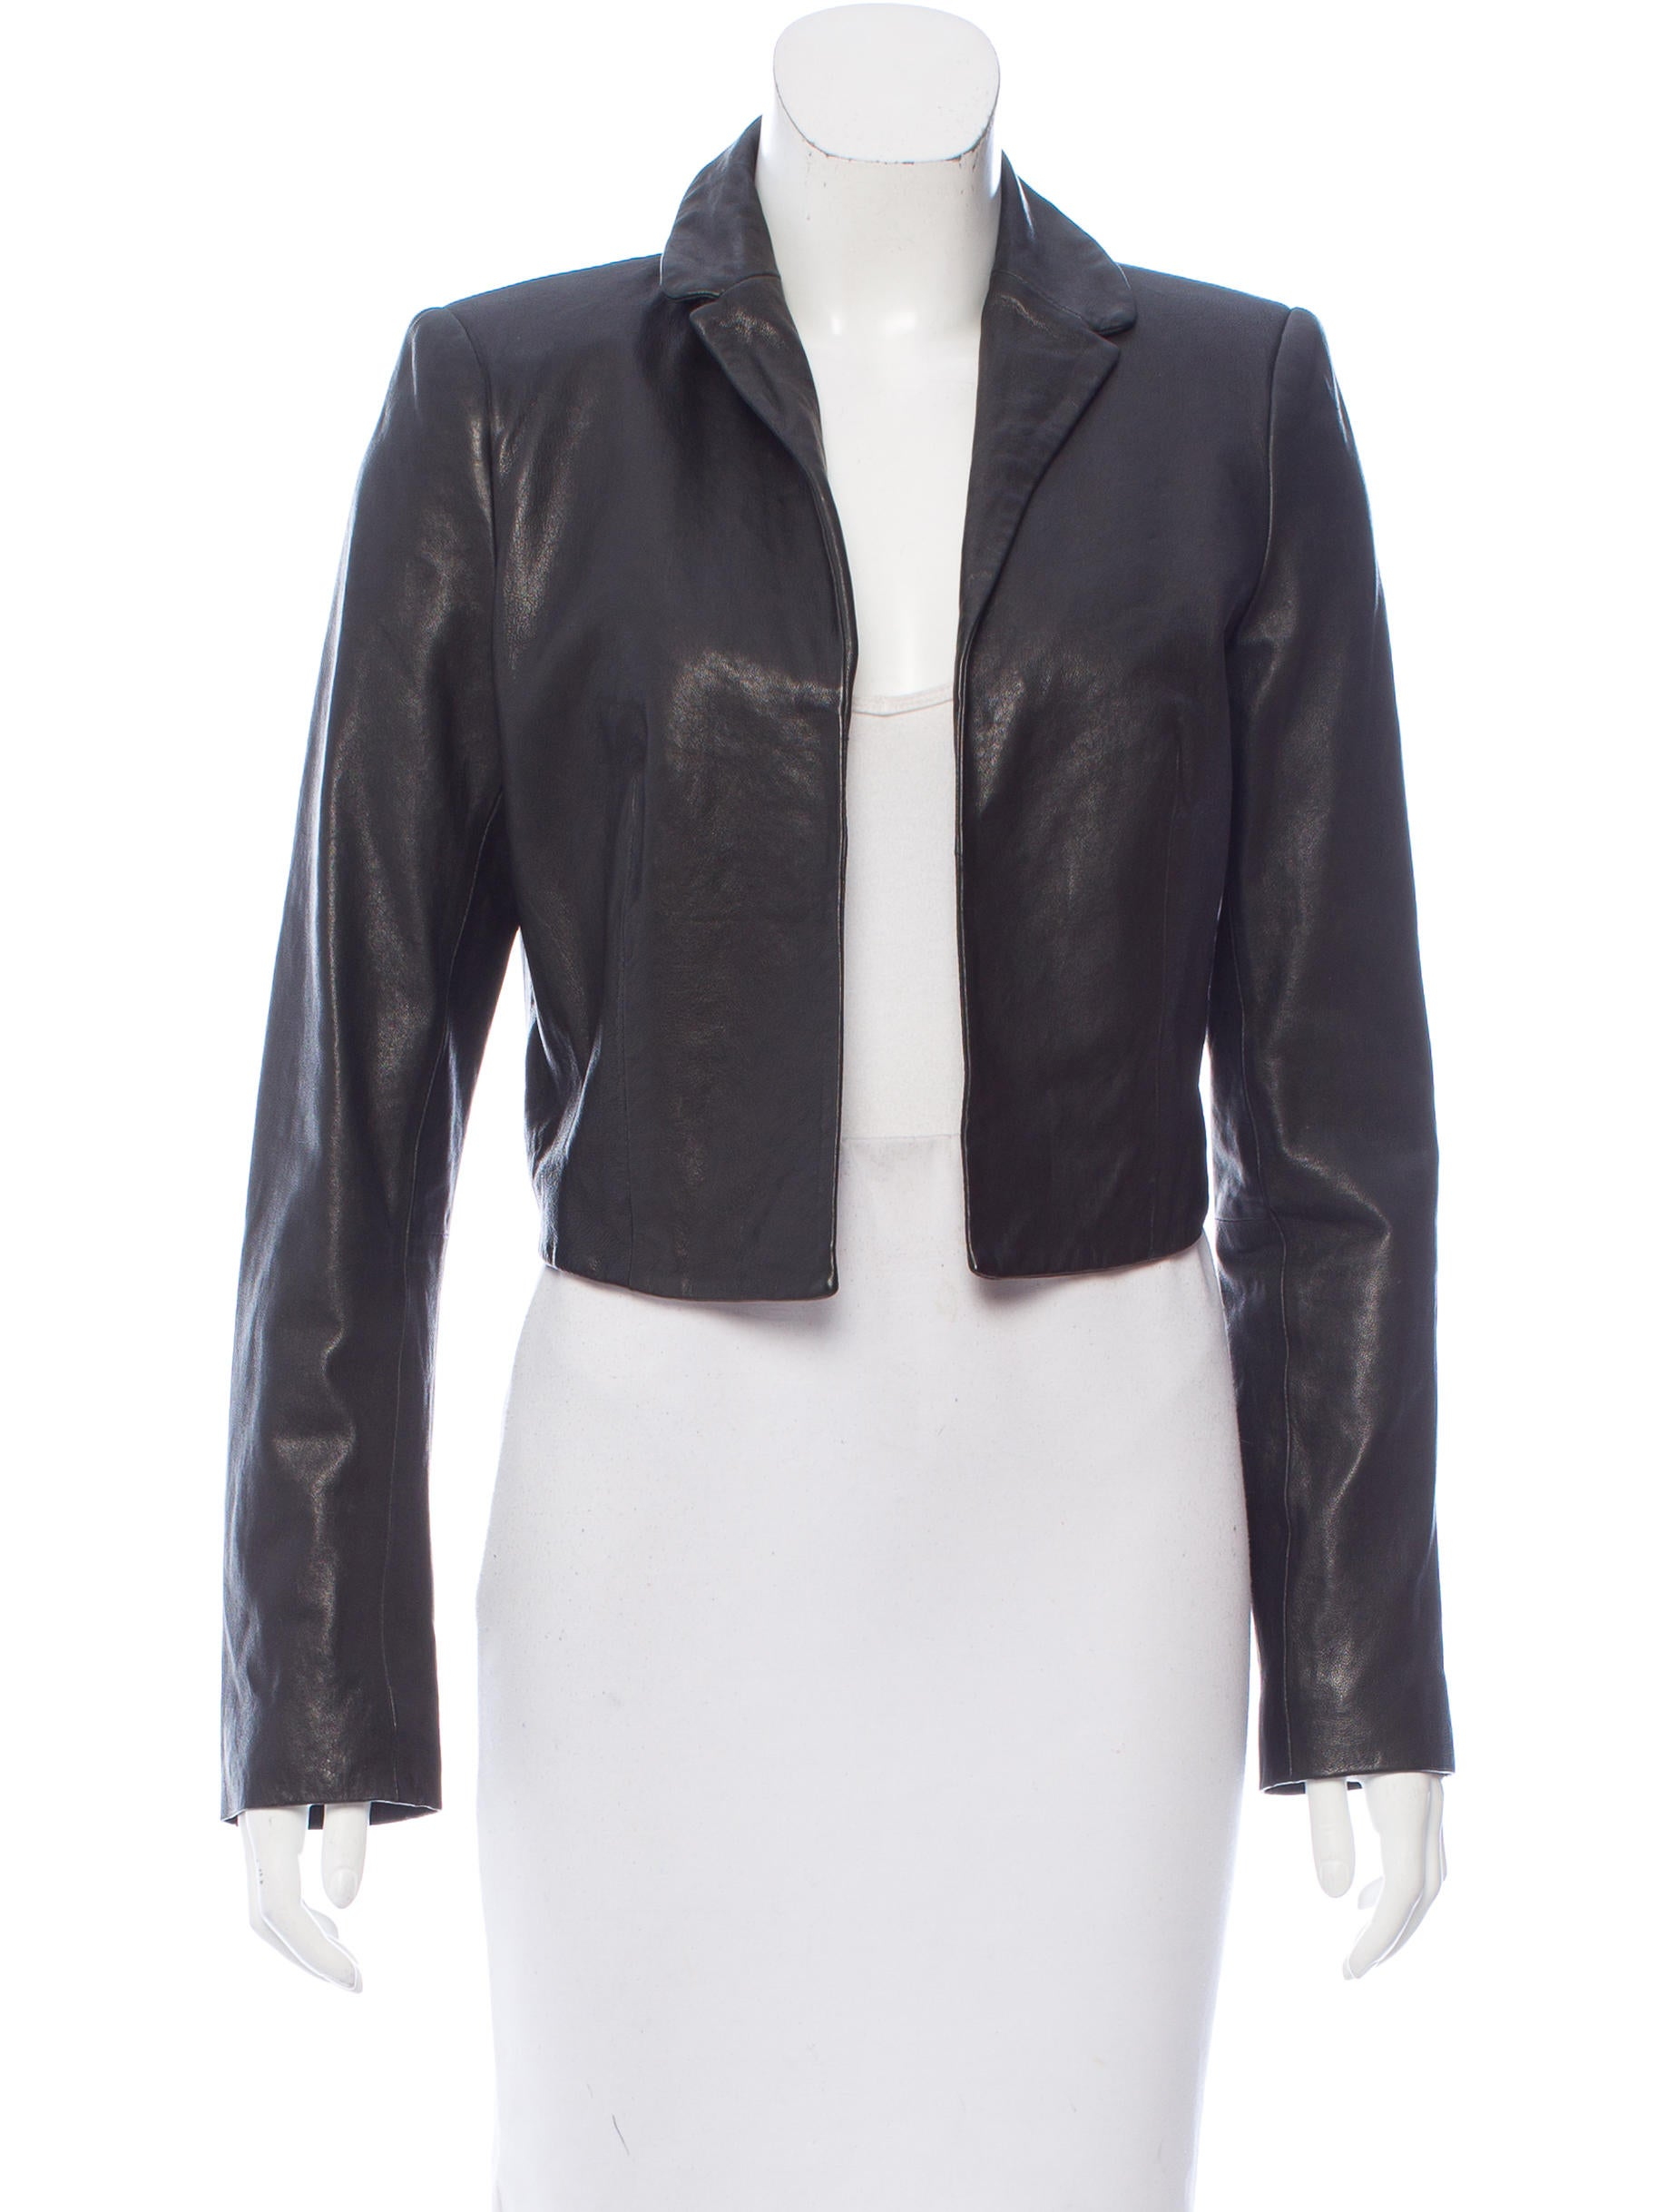 Shop Wilsons Leather for women's clearance leather outerwear, accessories and more. Get high quality women's clearance leather outerwear & accessories at exceptional values.